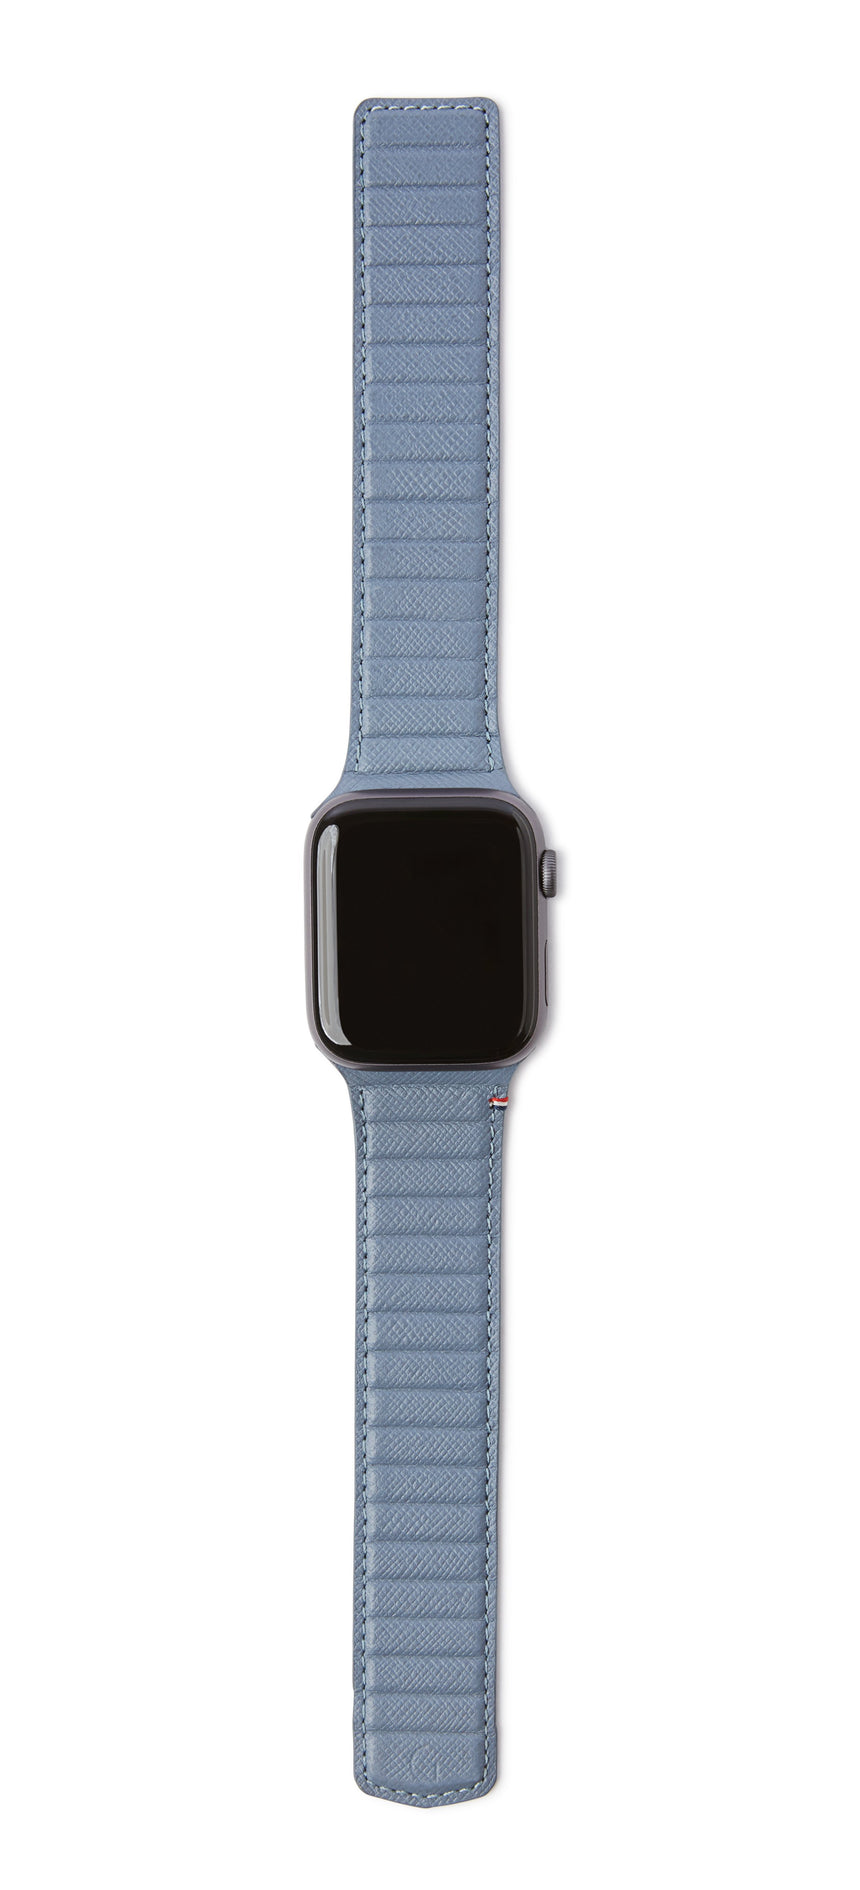 Traction Strap Lite Ash Blue - 44 mm-Traction Strap-Decoded Bags